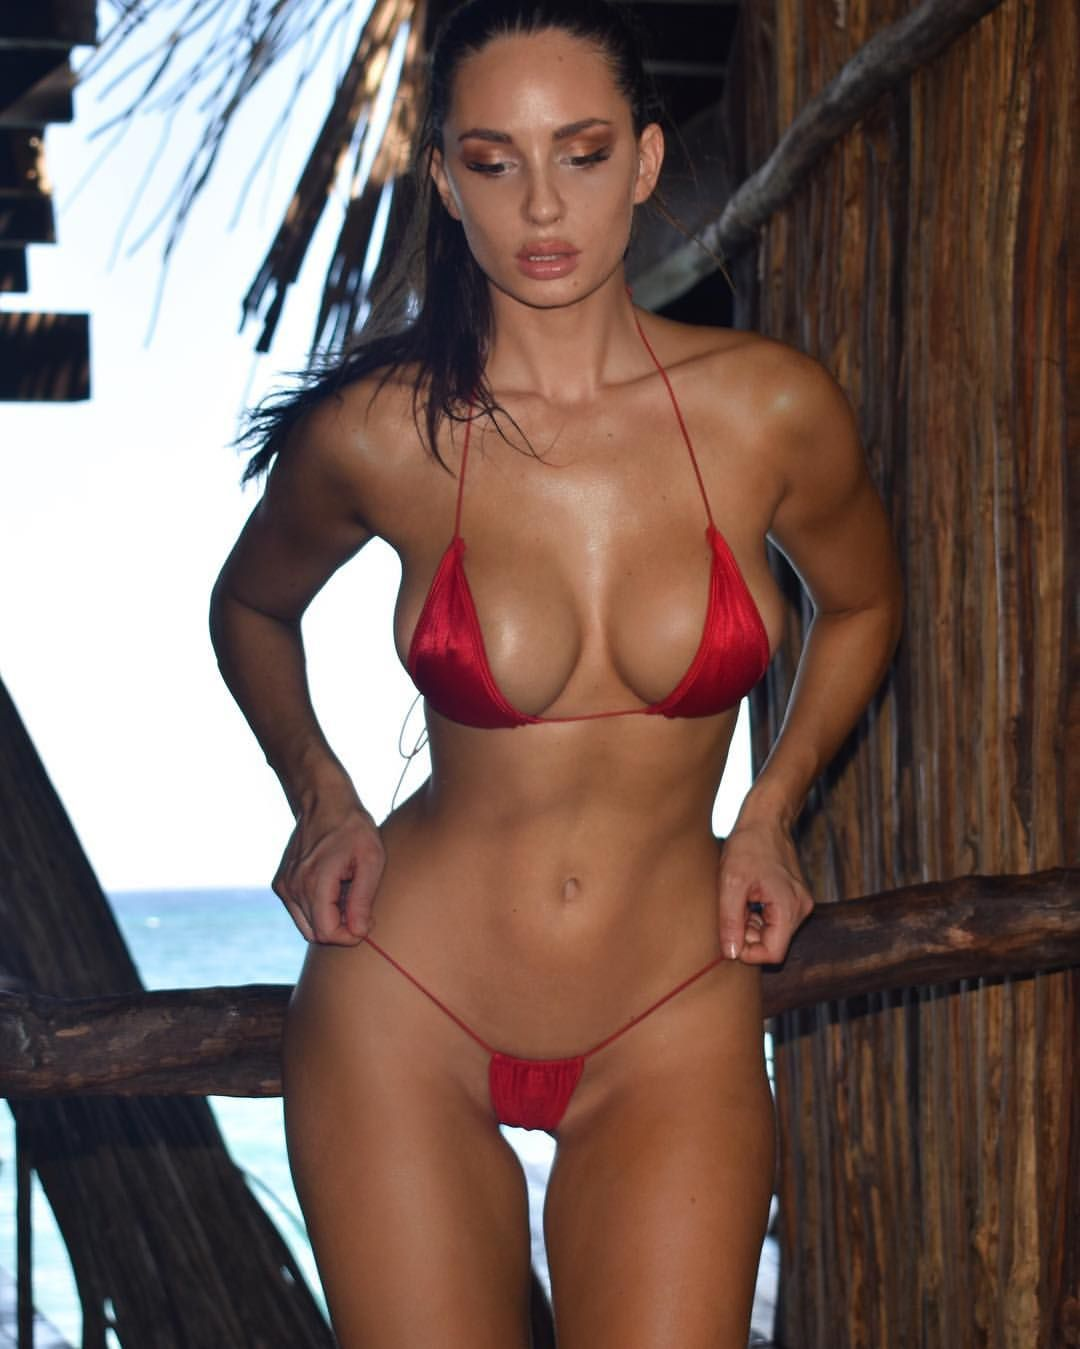 Pussy Rosie Roff  nude (39 images), Snapchat, cameltoe